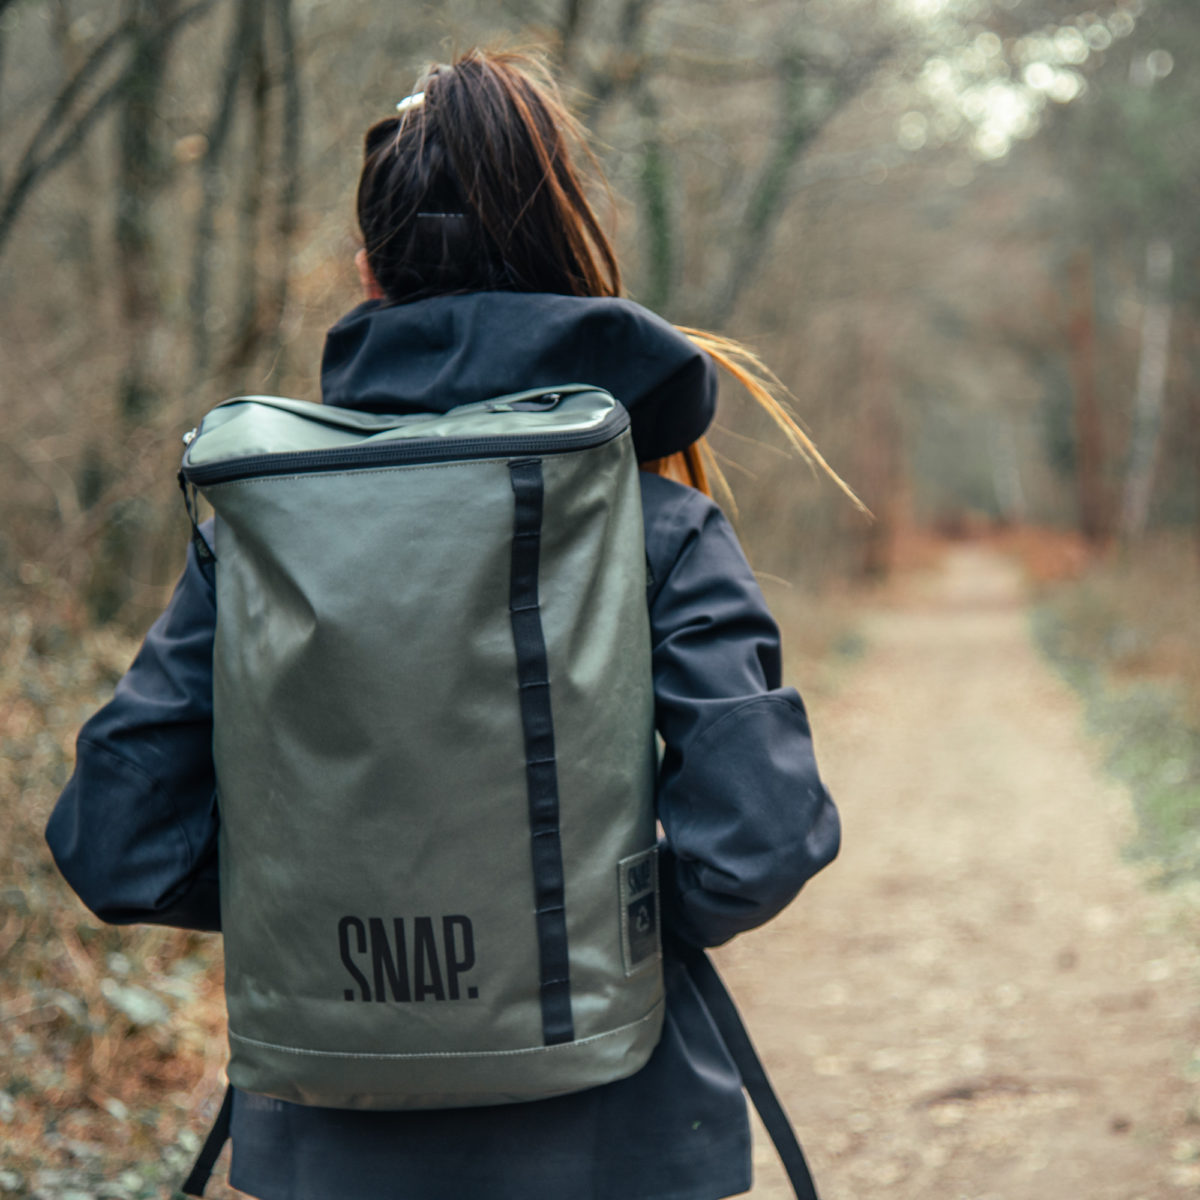 snap climbing compact backpack